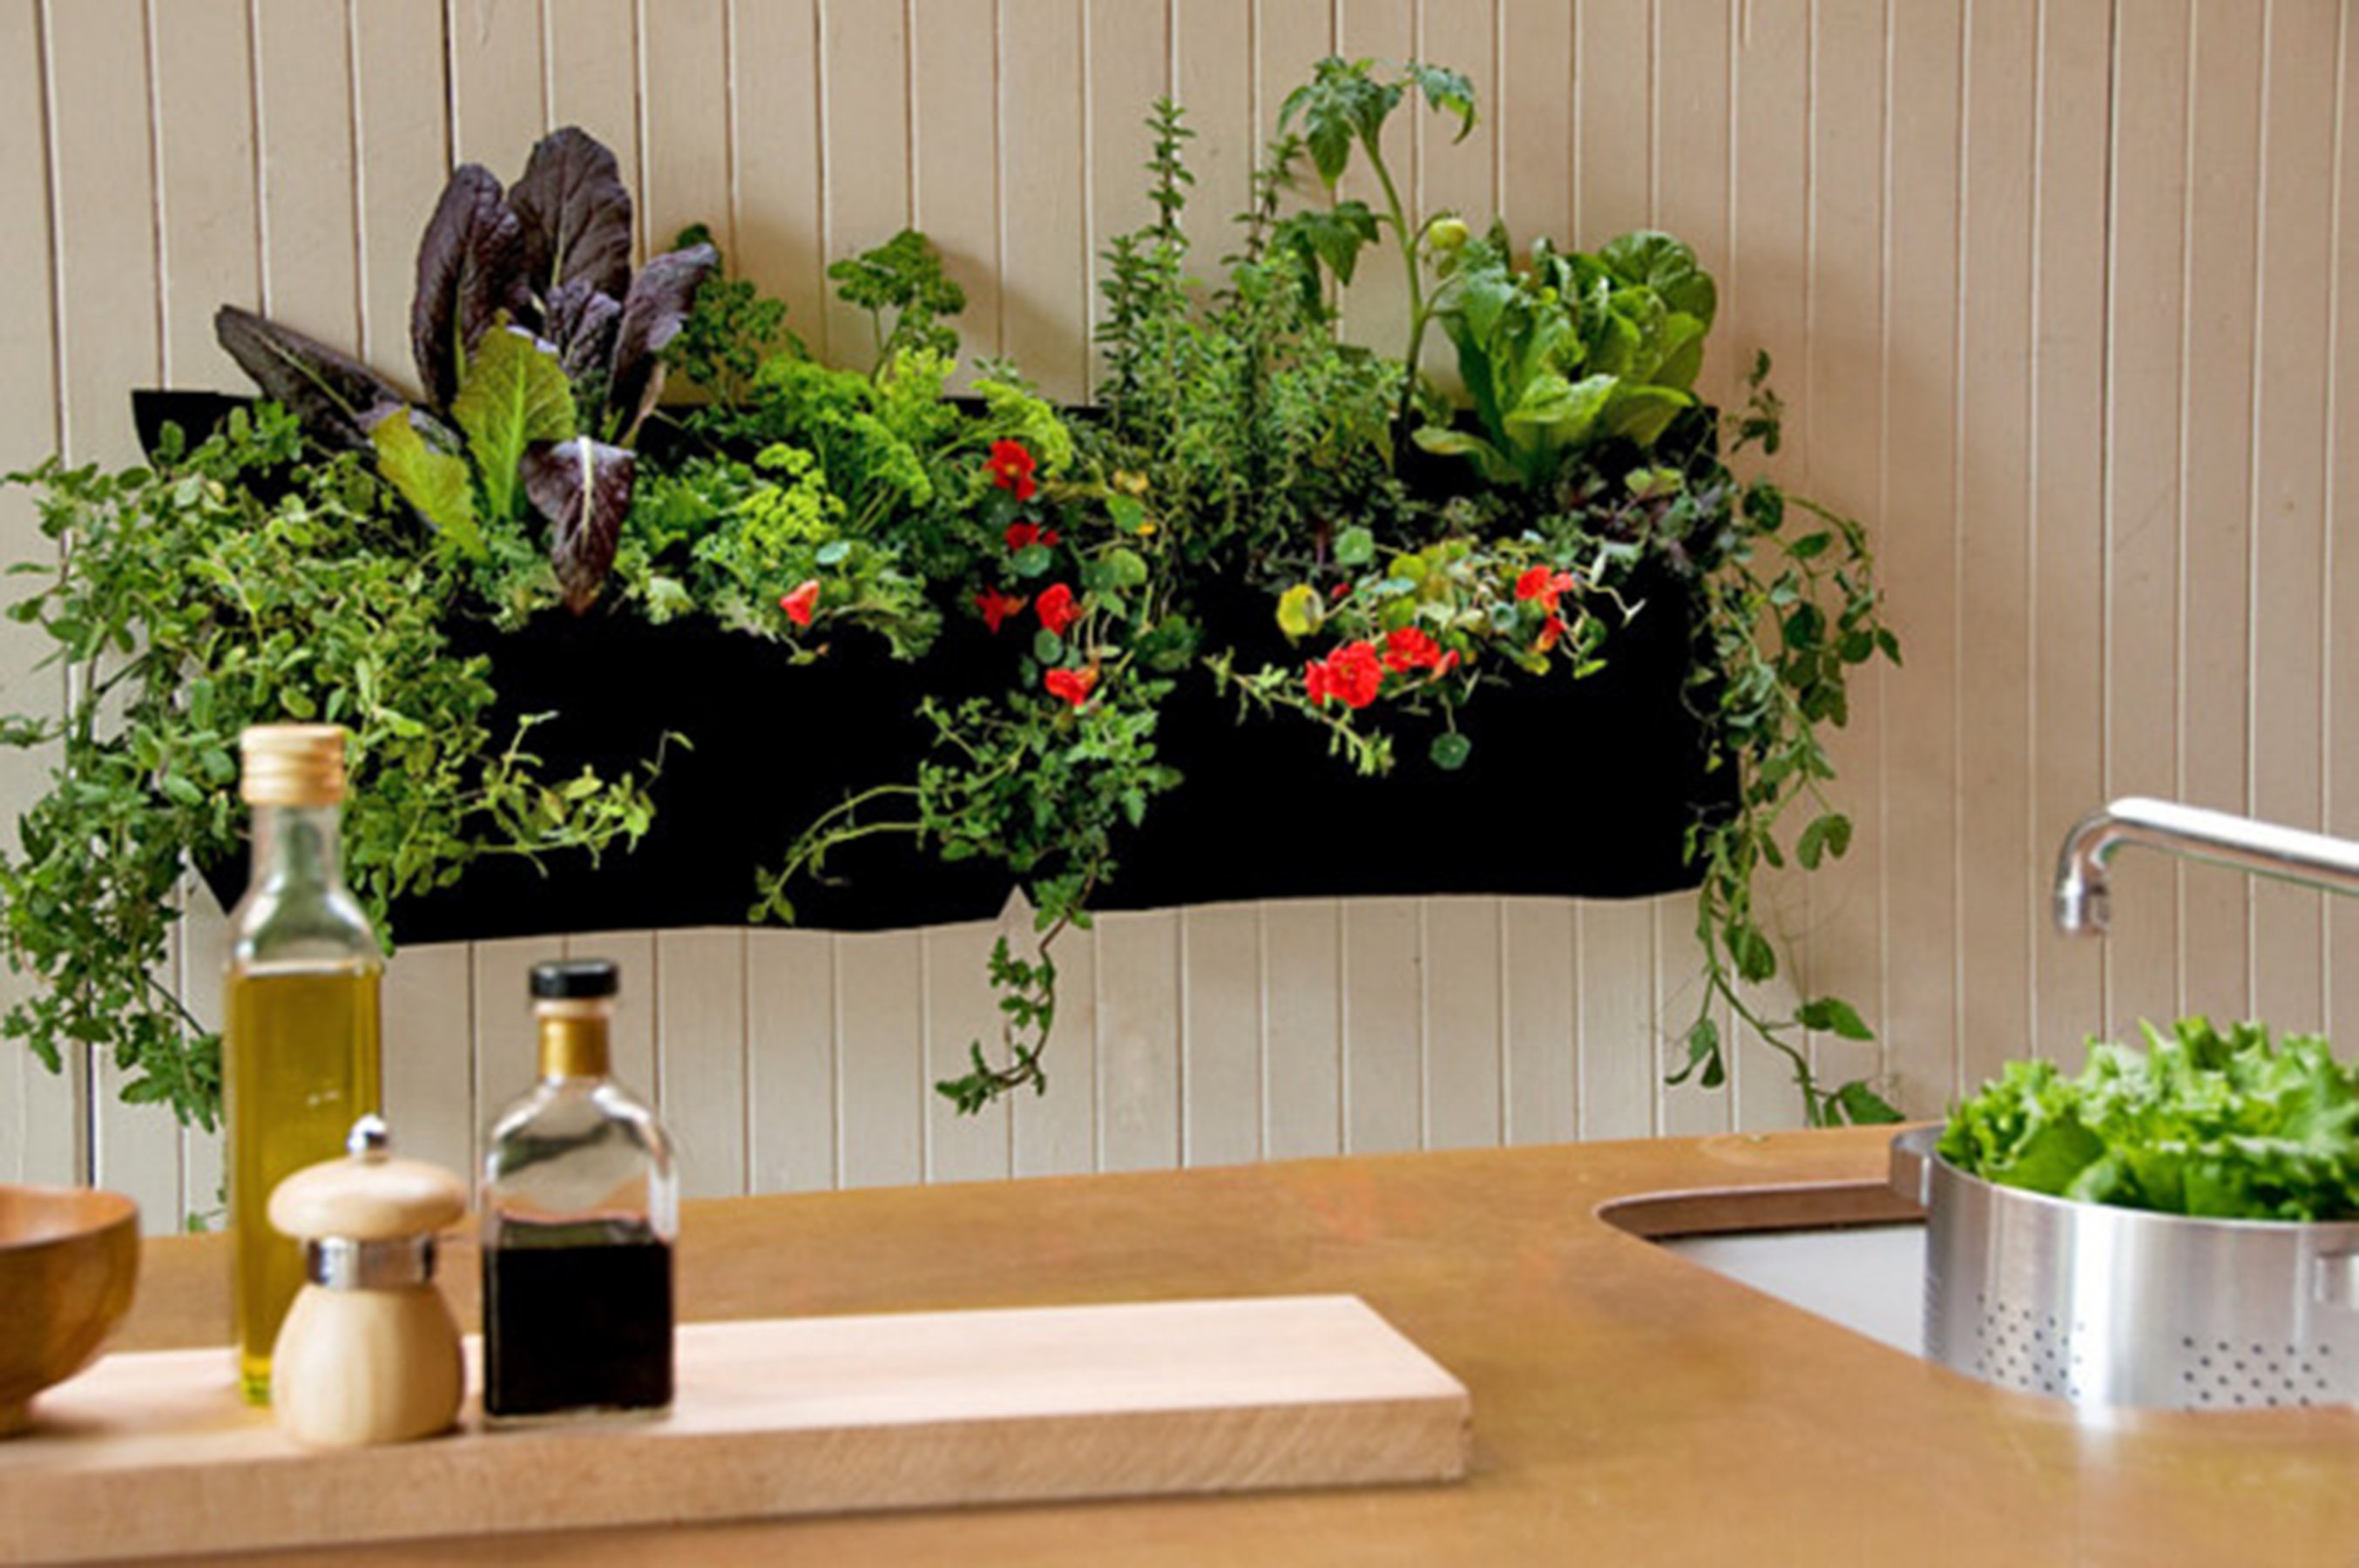 How to Grow an Indoor Garden - Cache Valley Family Magazine